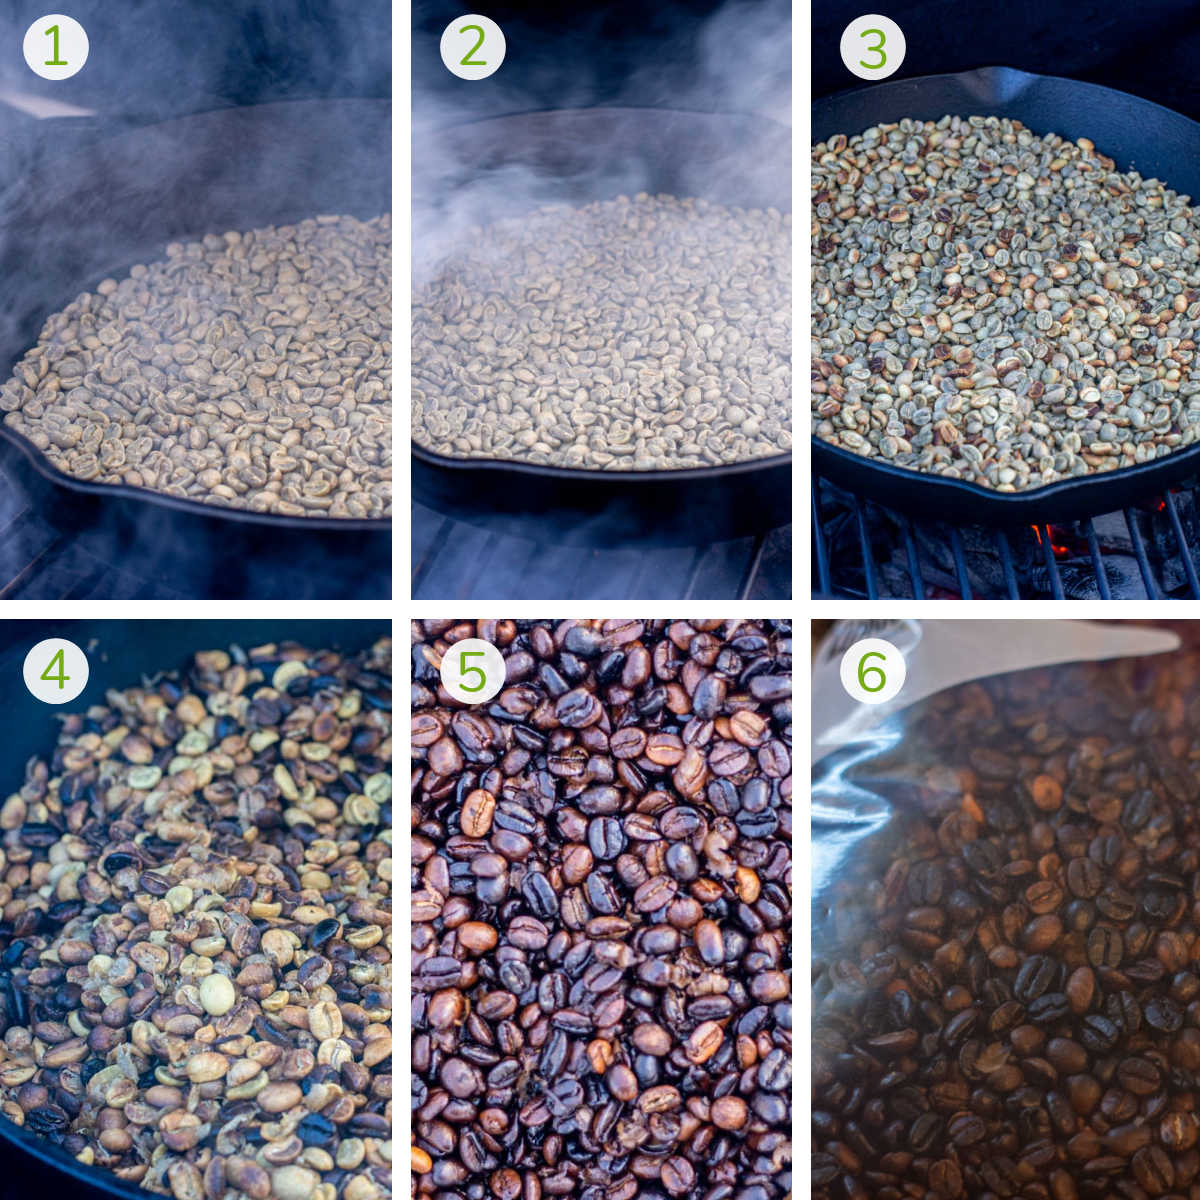 six steps to smoke coffee beans, roast them to a deep, rich brown color and storing them in a plastic ziploc bag.